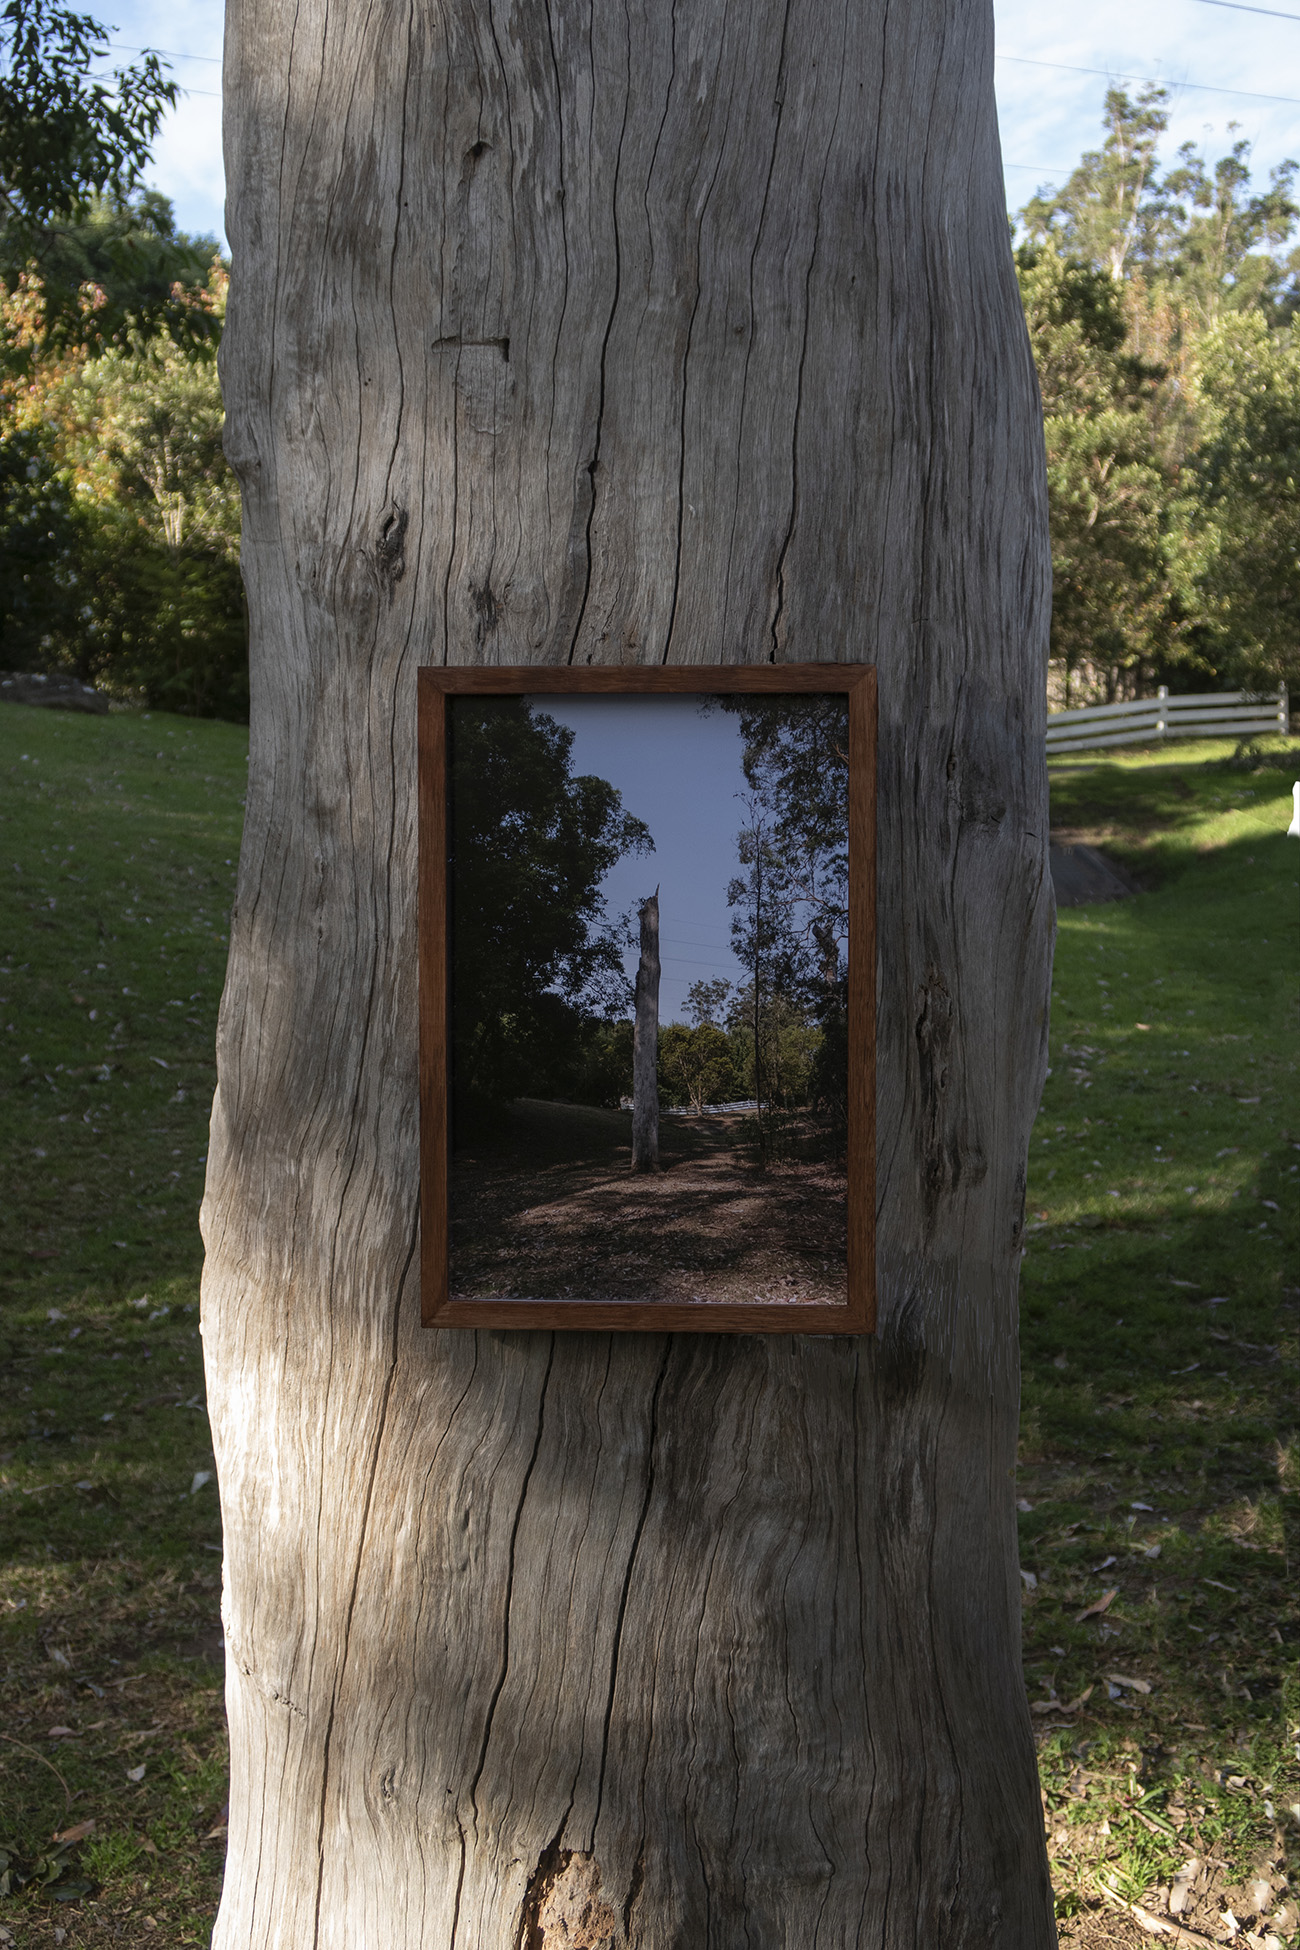 Framed picture of tree hung on tree.